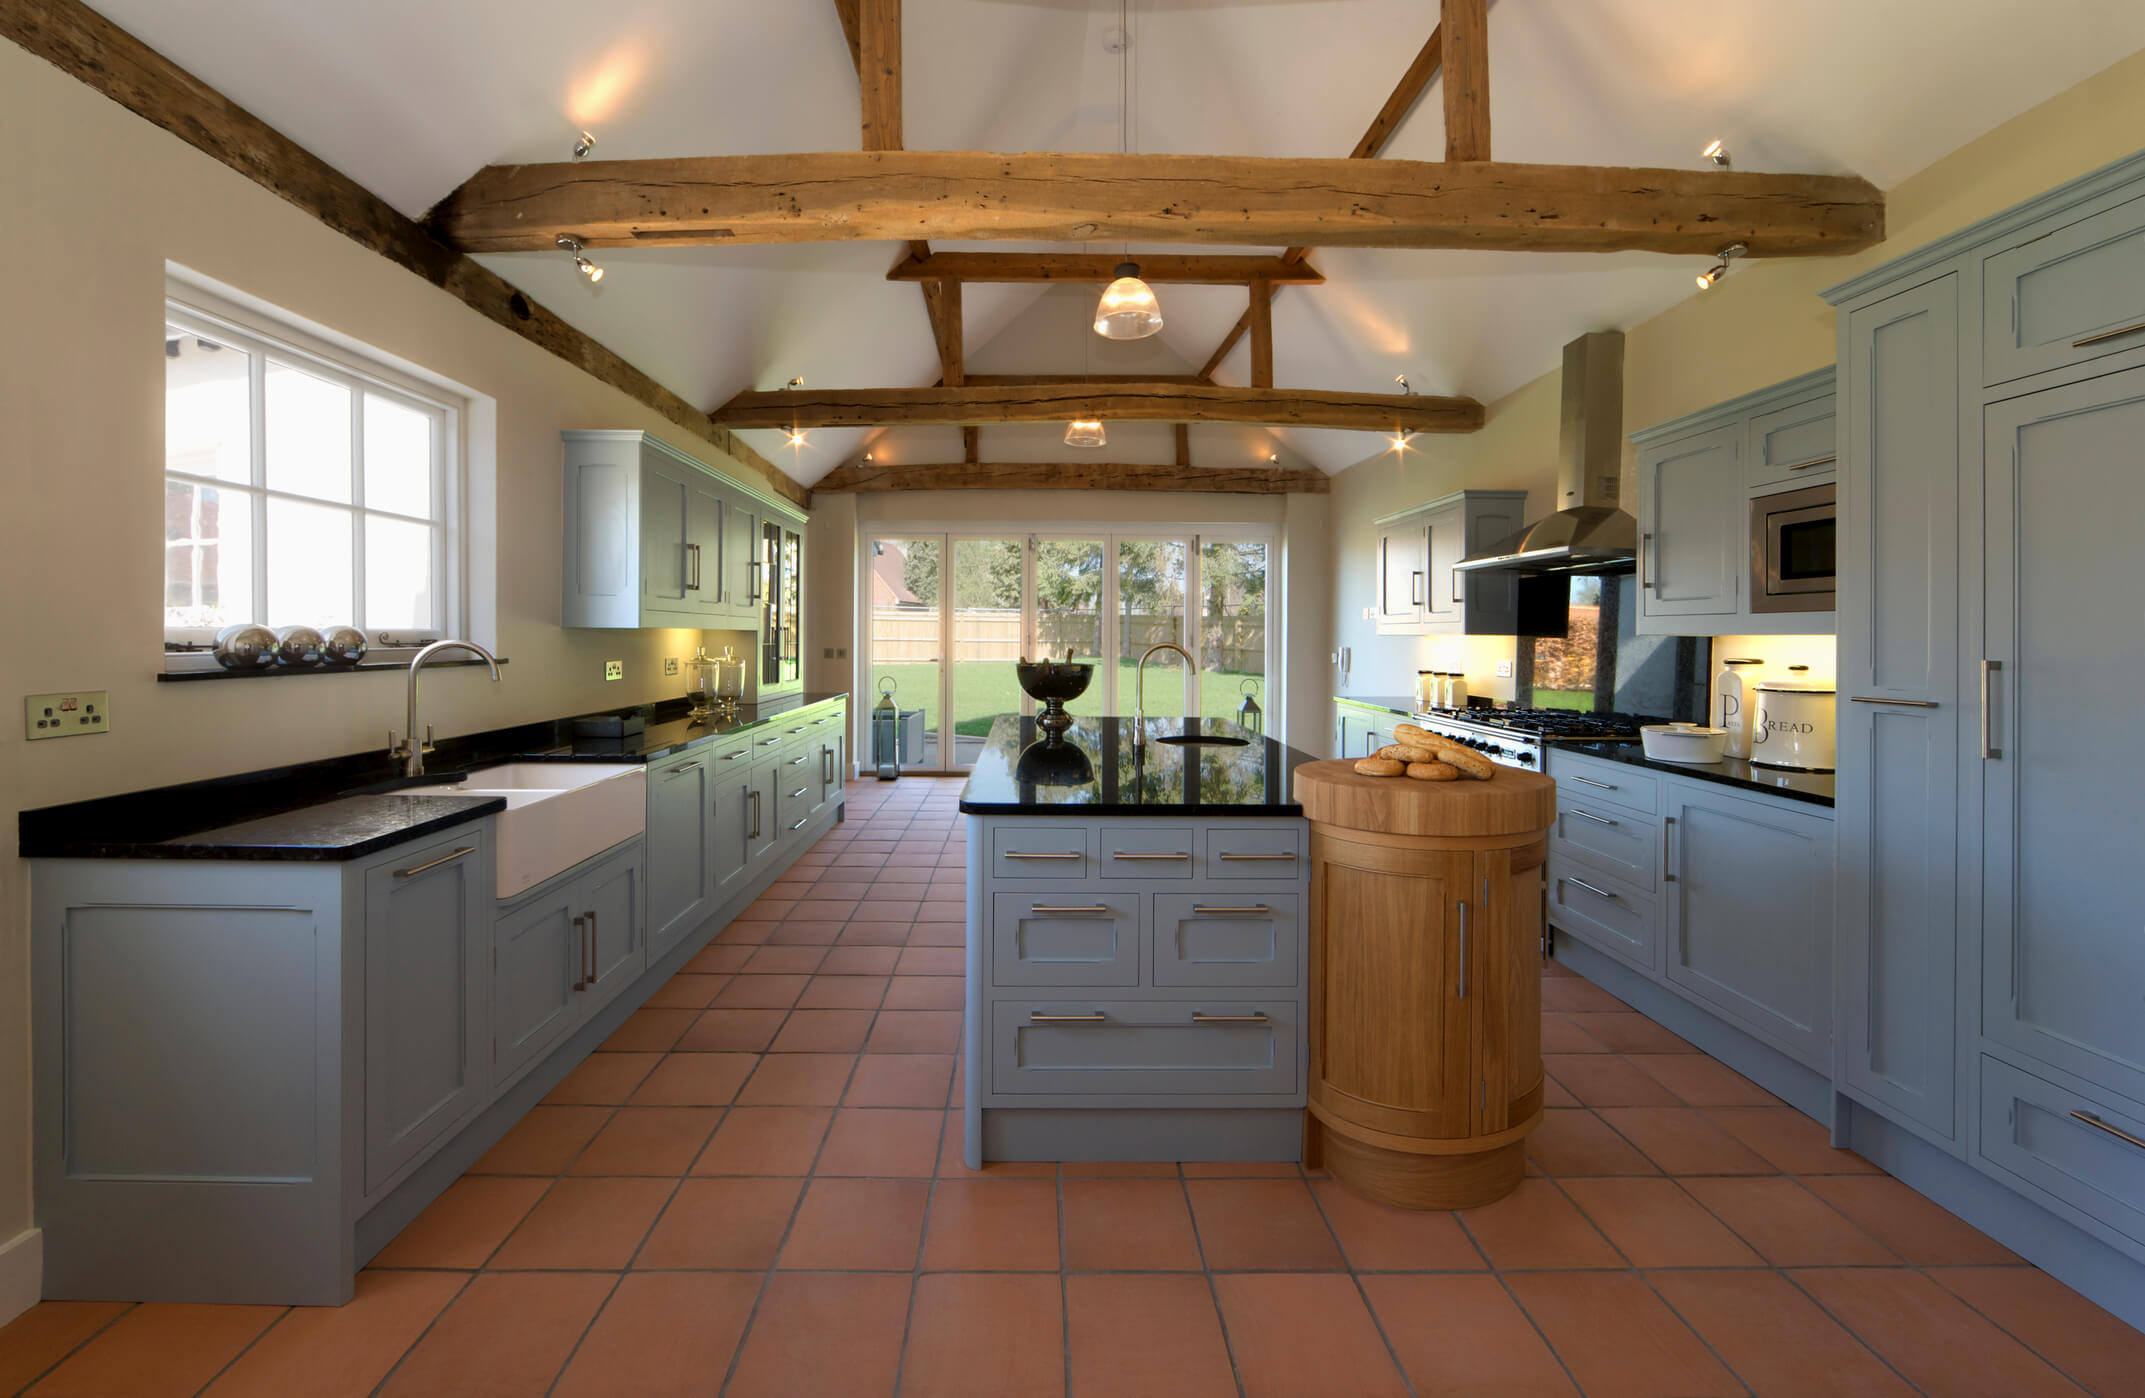 Farmhouse Kitchen, Bespoke Kitchen, Elegant Bespoke Living, Shaker Kitchen, Granite work surface